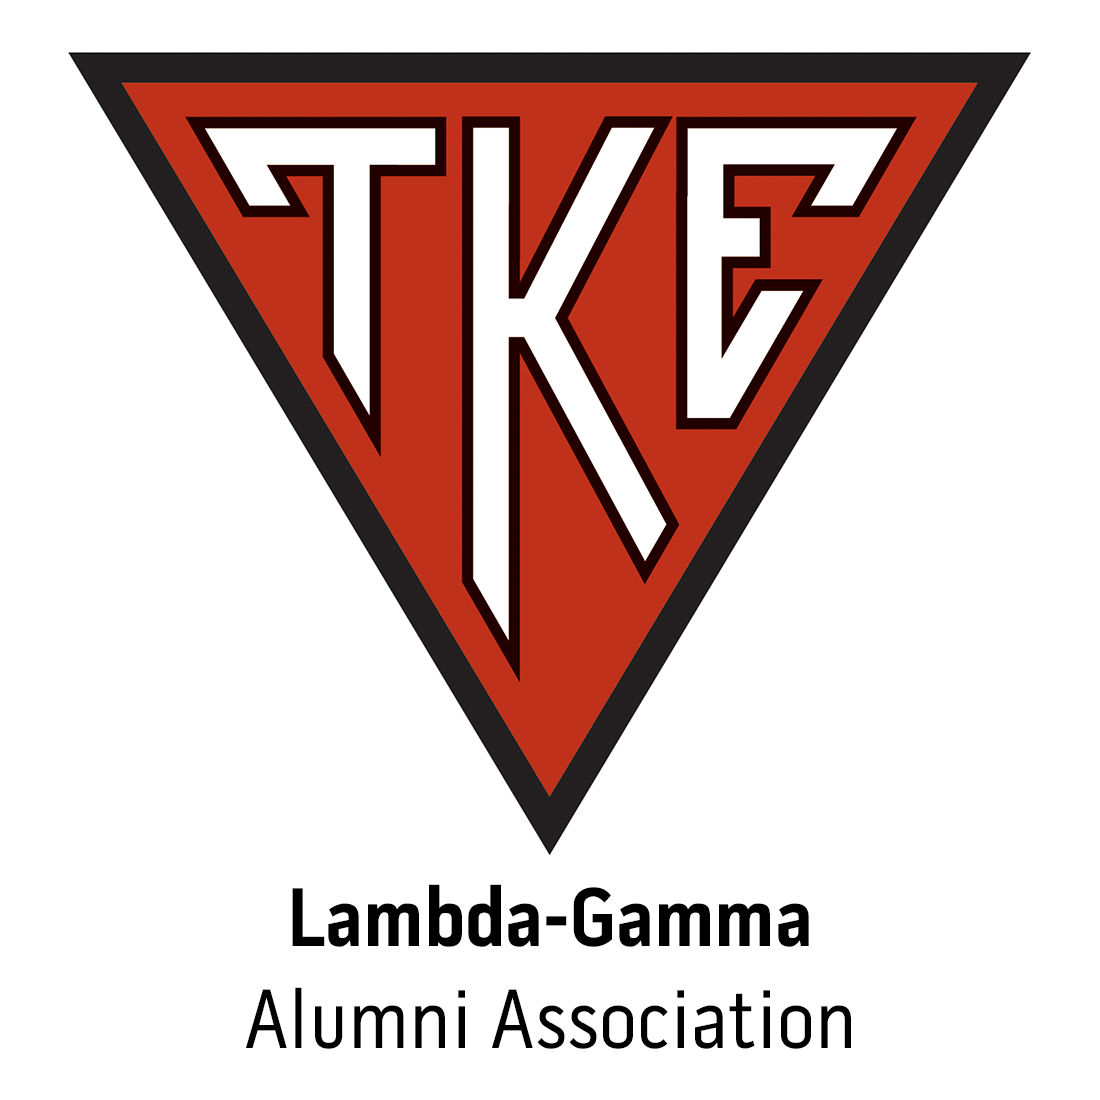 Lambda-Gamma Alumni Association at University of Cincinnati